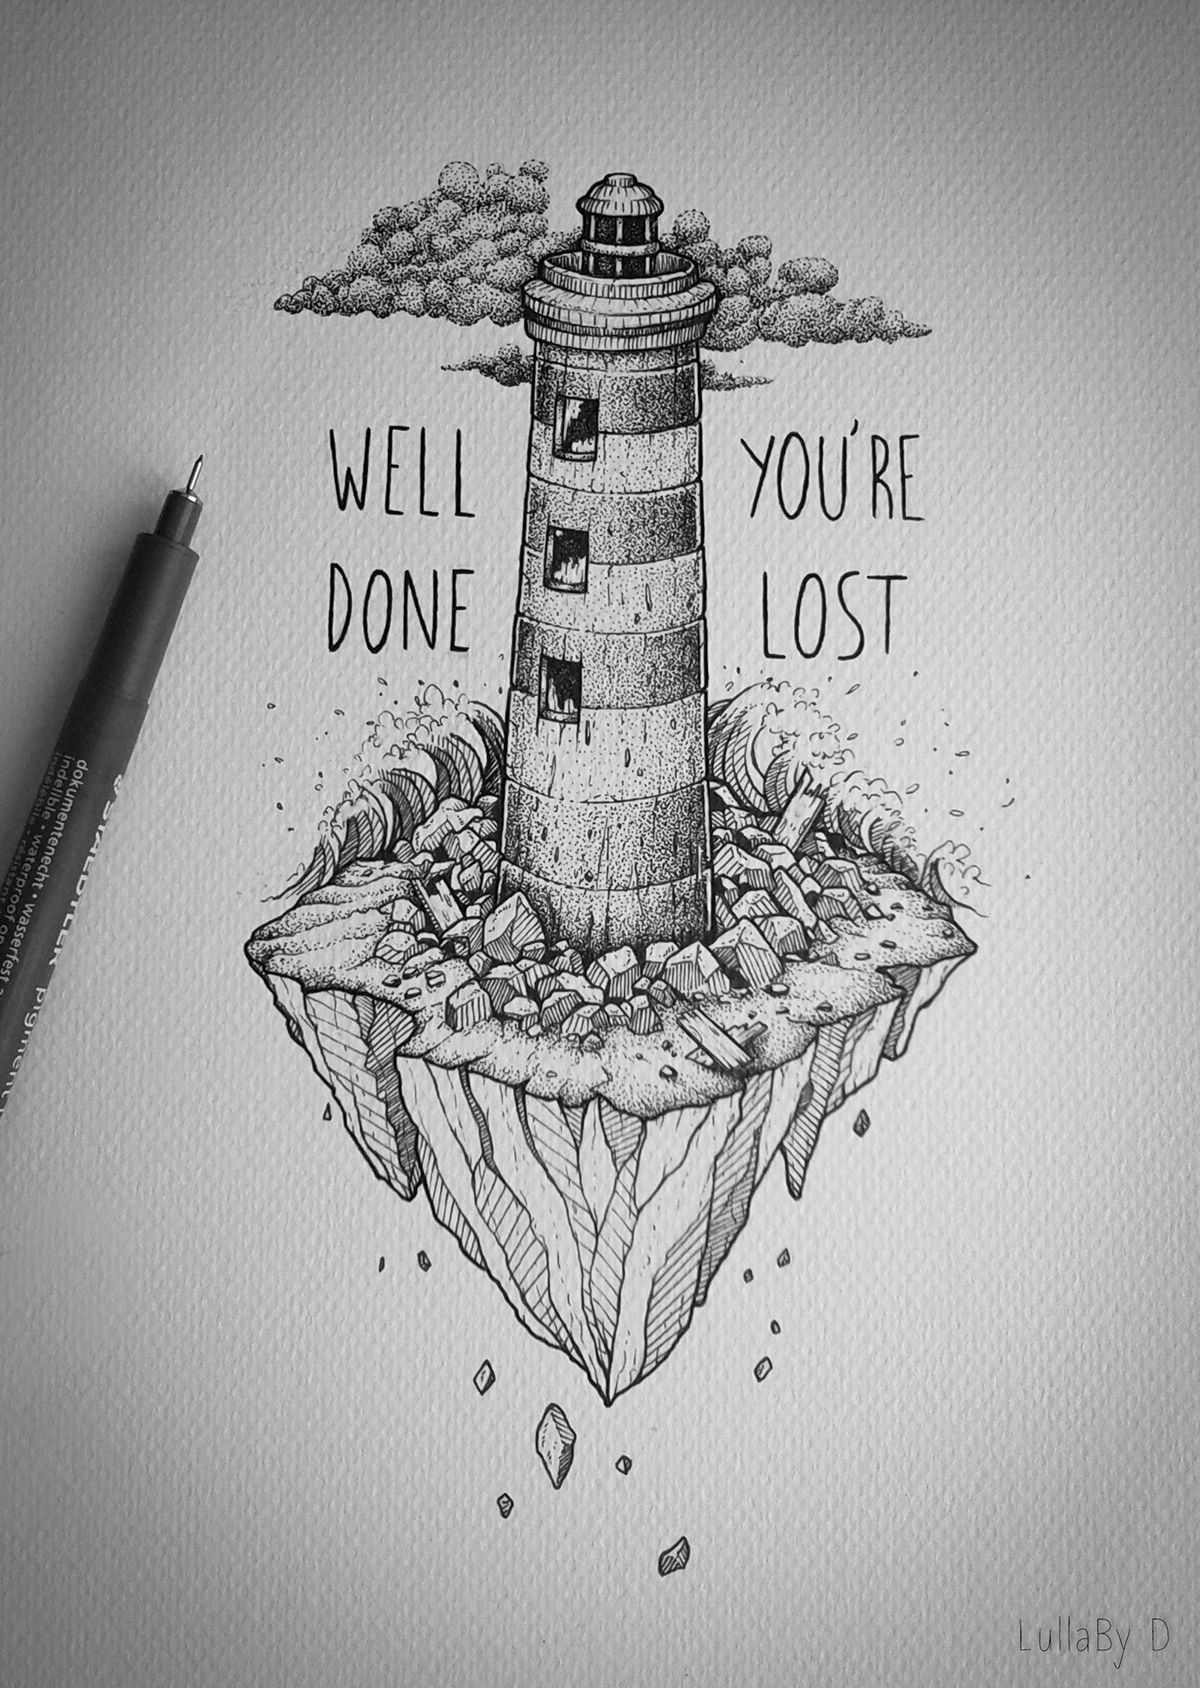 Well done youre lost on behance cute drawings easy drawings sketches